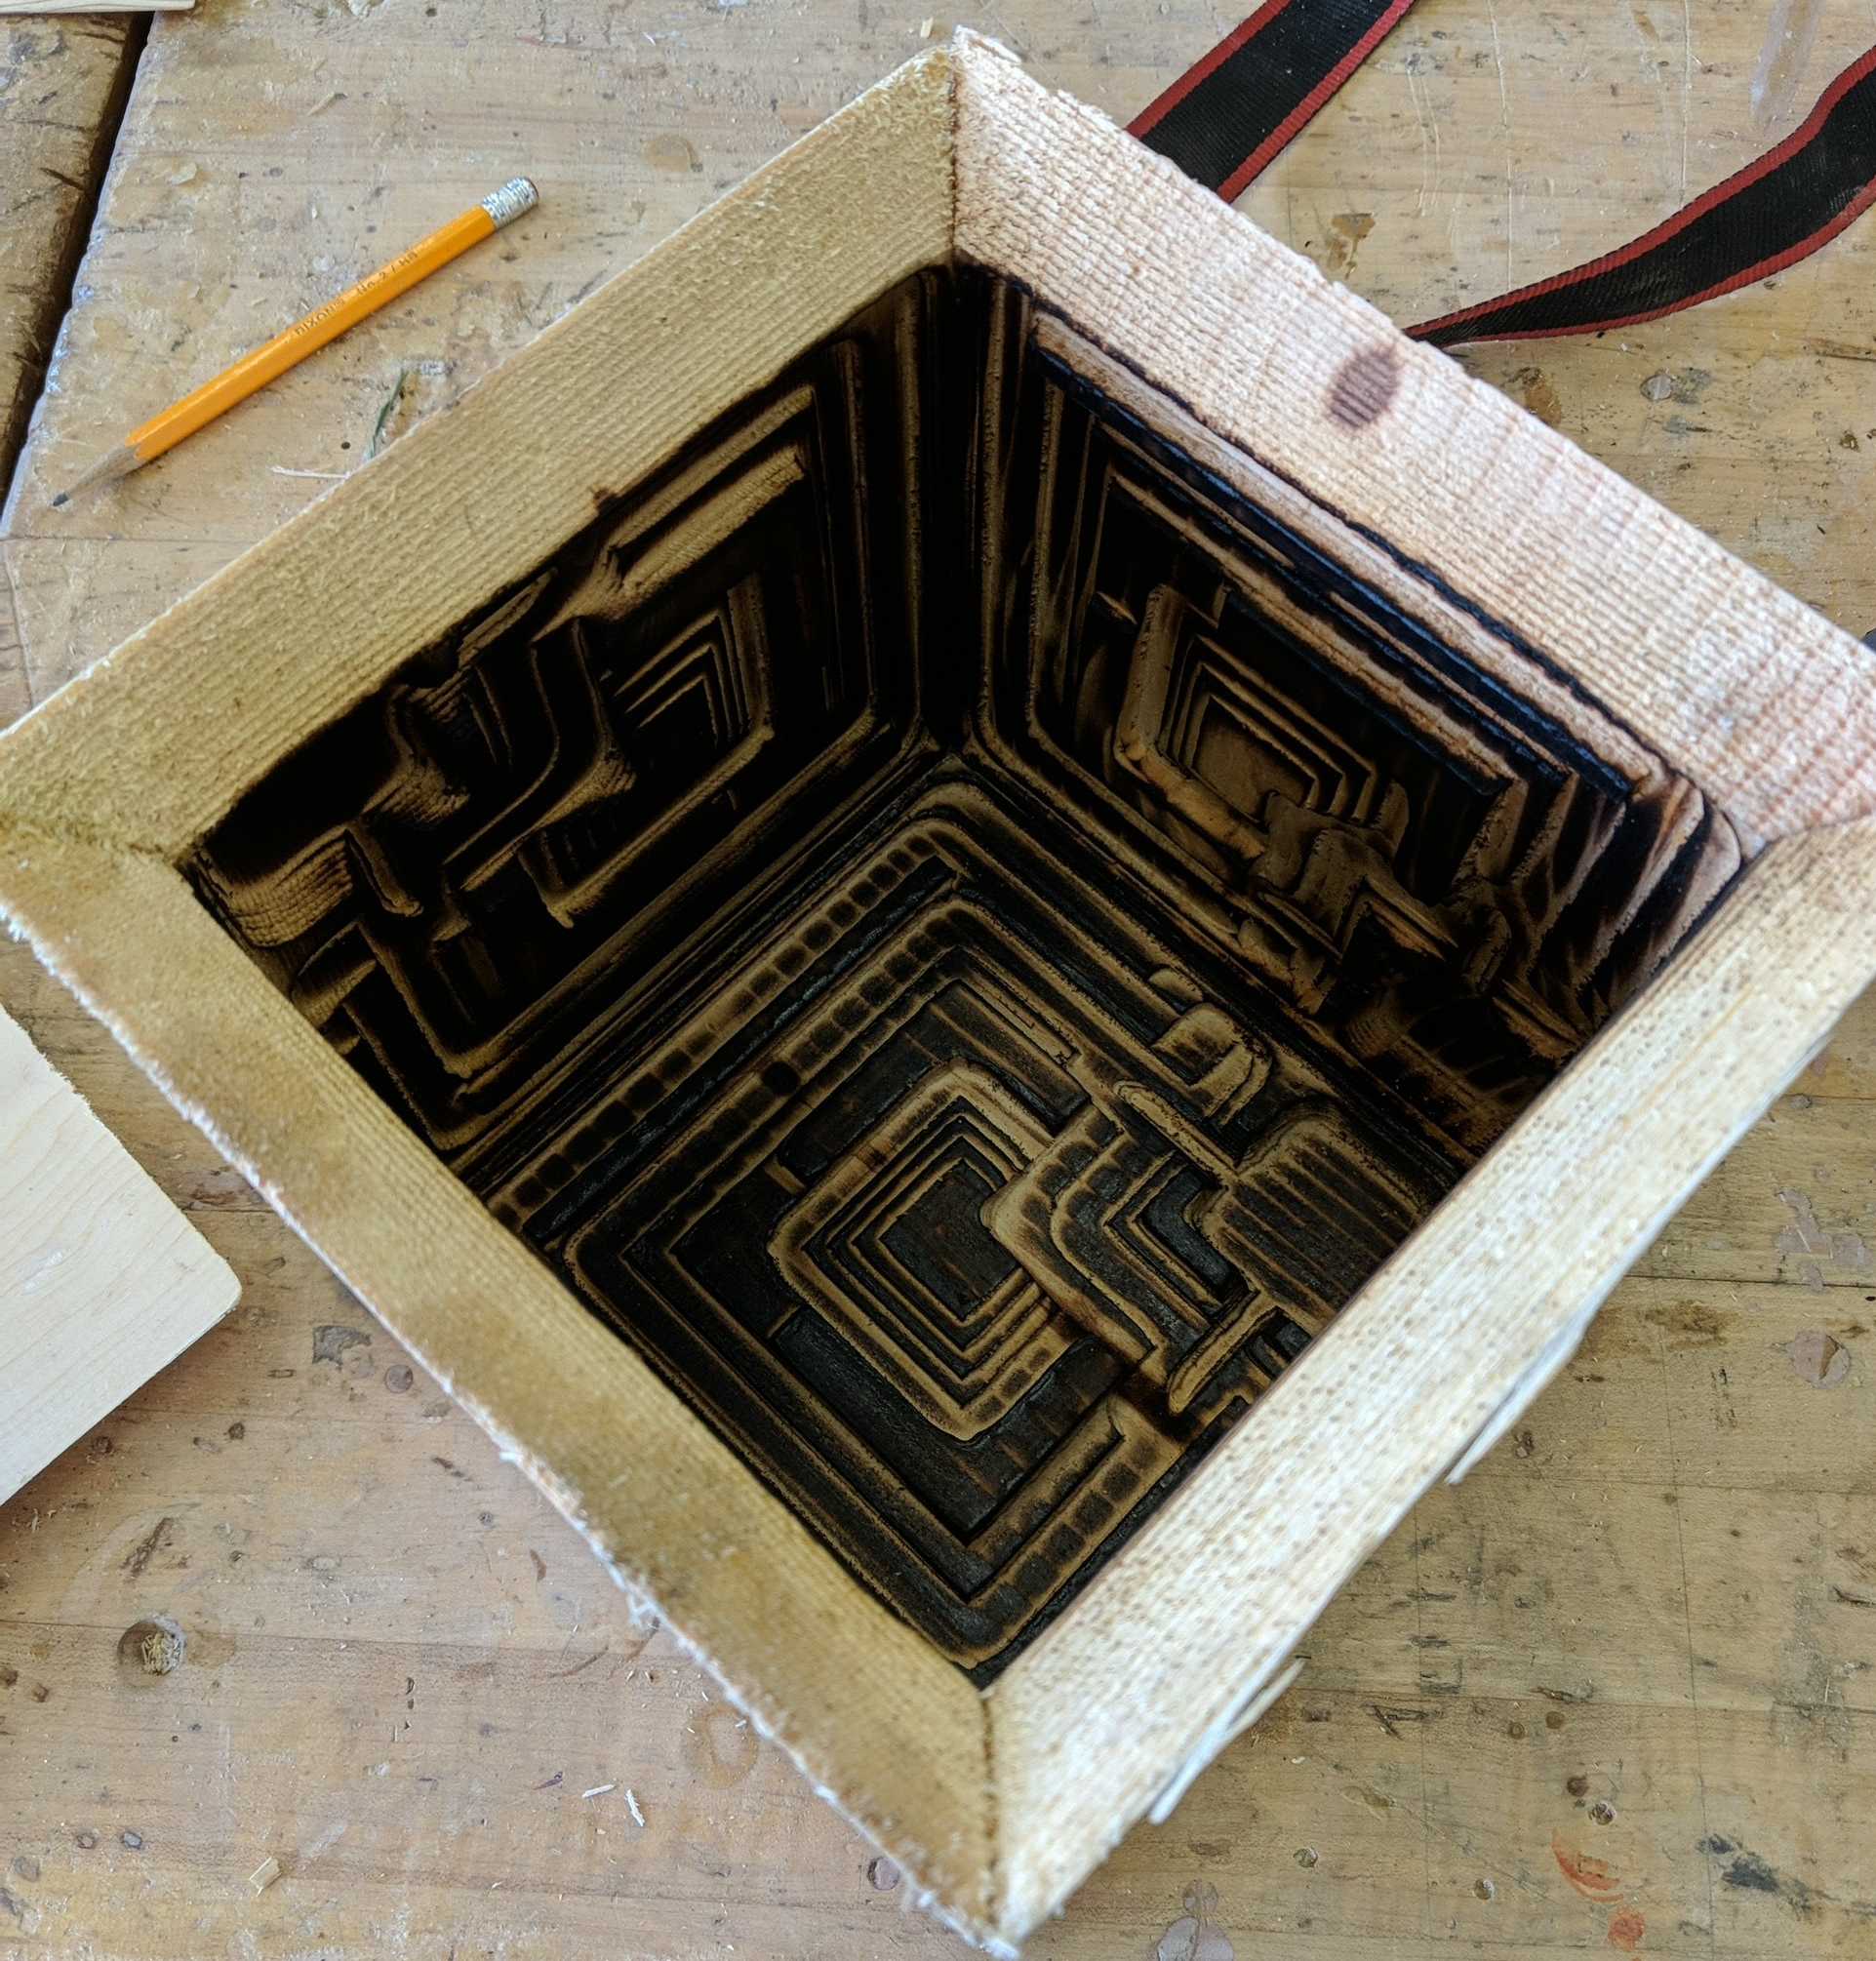 The Finished Flame Polished Ennis House block mold ready to have the top added and be poured full of concrete